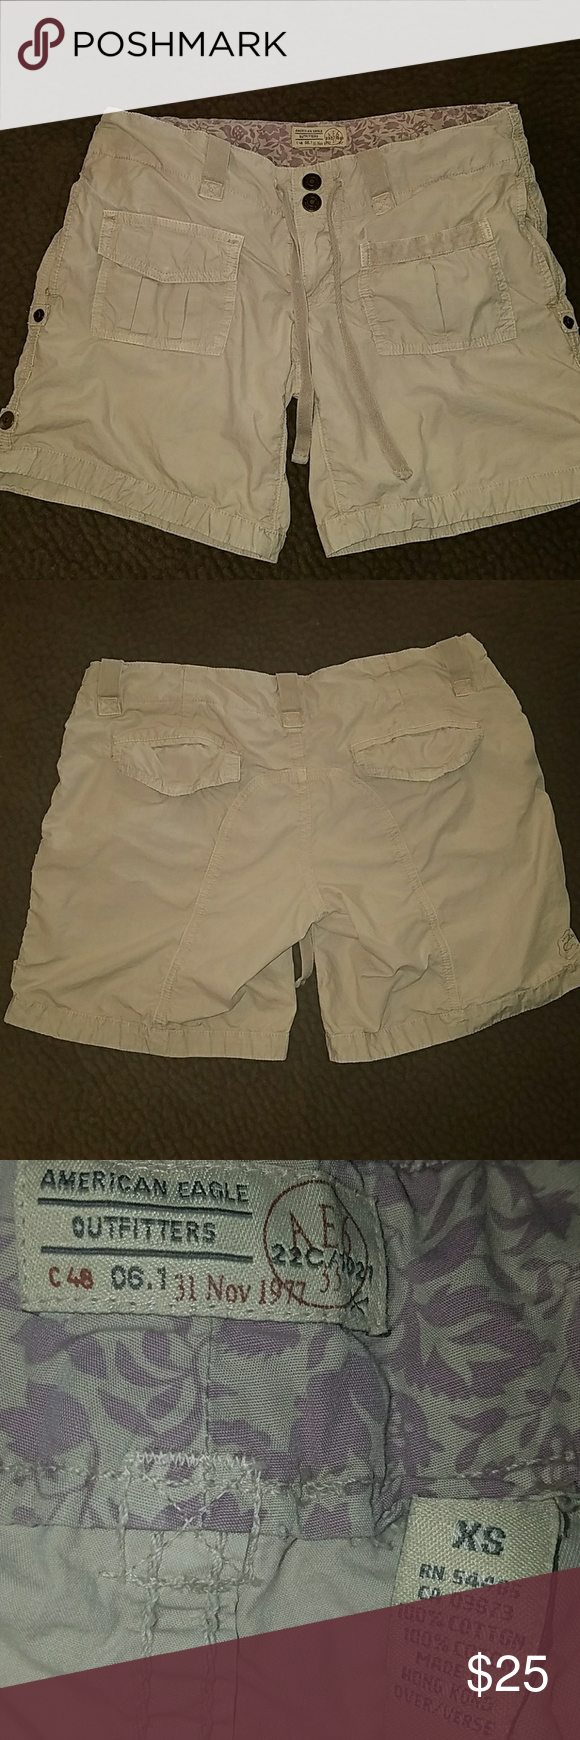 """XS American Eagle shorts Light tan colored AE shorts size XS. Laying flat 15.5"""" across with 6.5"""" inseam. Can be rolled up and buttoned shorter. No holes or stains. American Eagle Outfitters Shorts"""